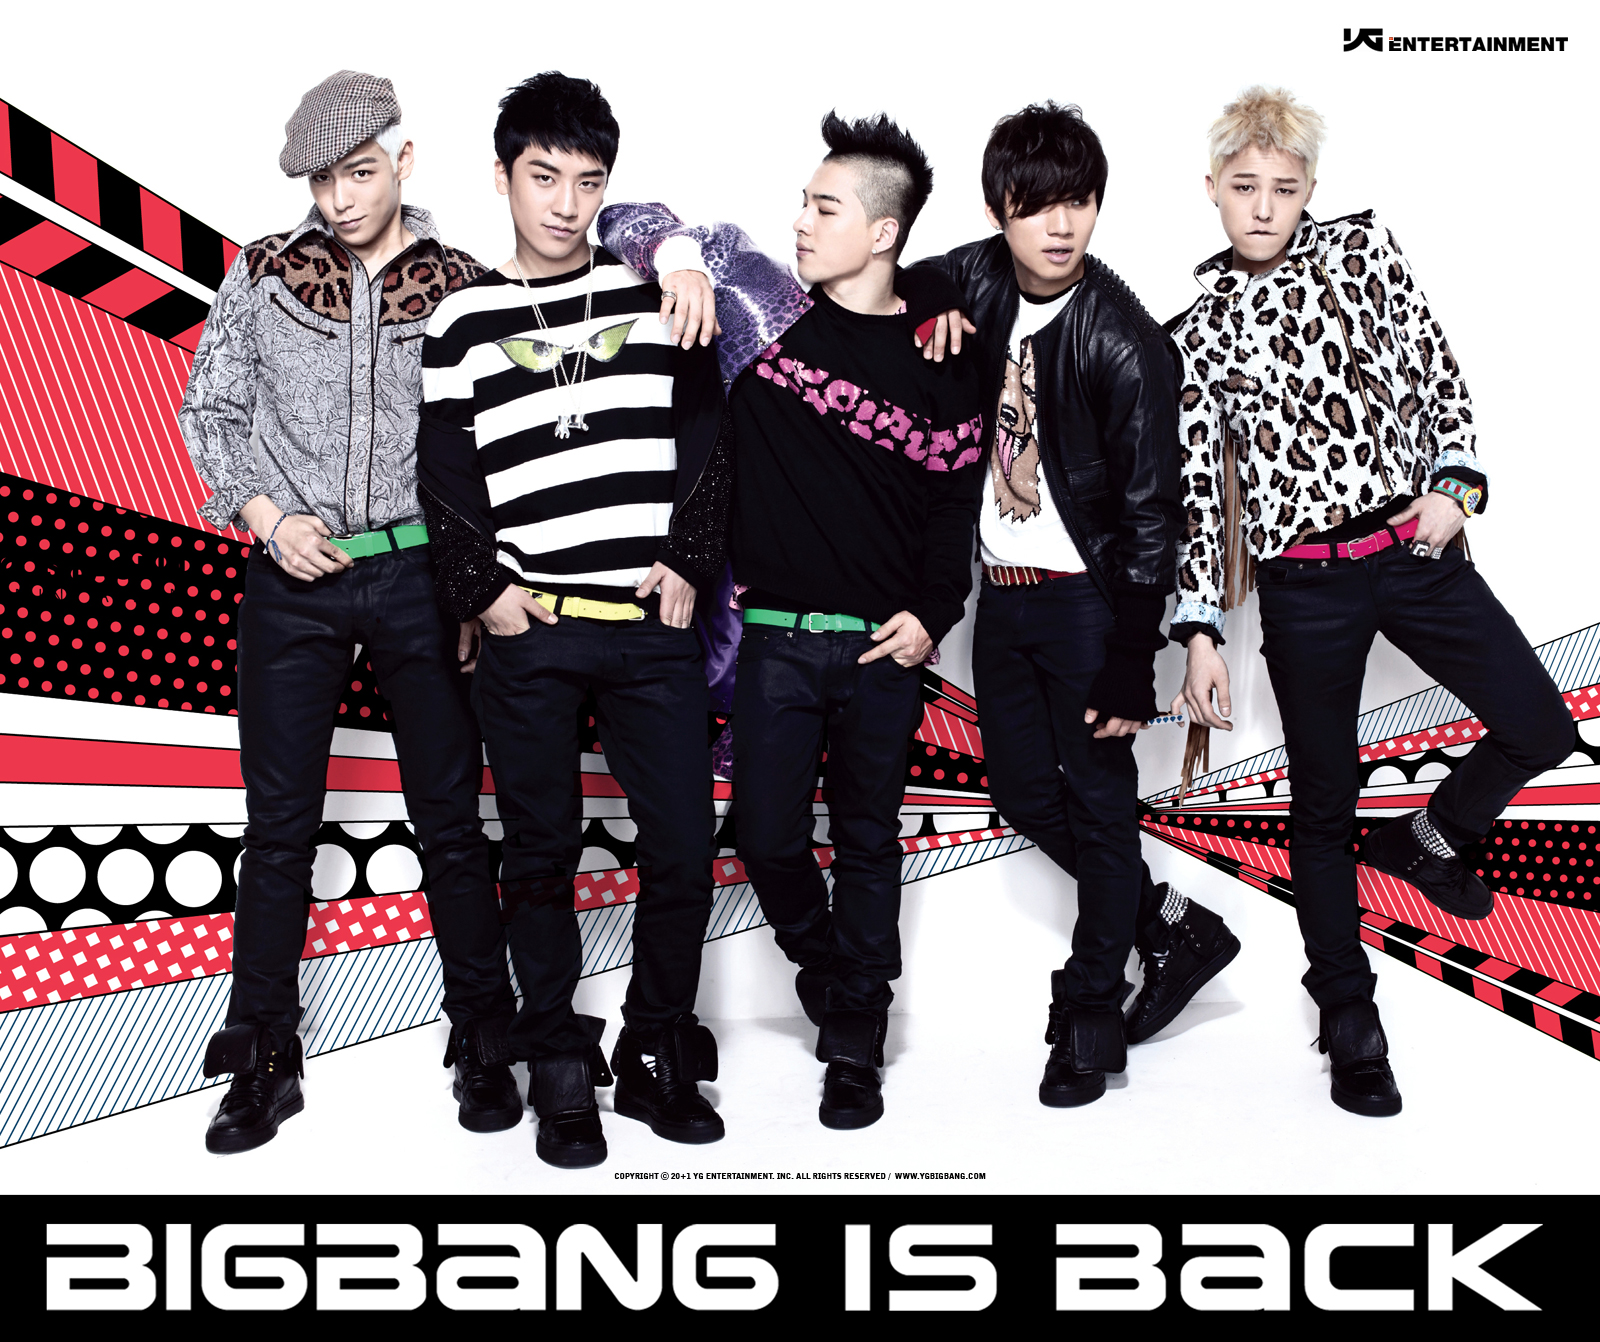 [Photos] Big Bang is Back Promo Shots